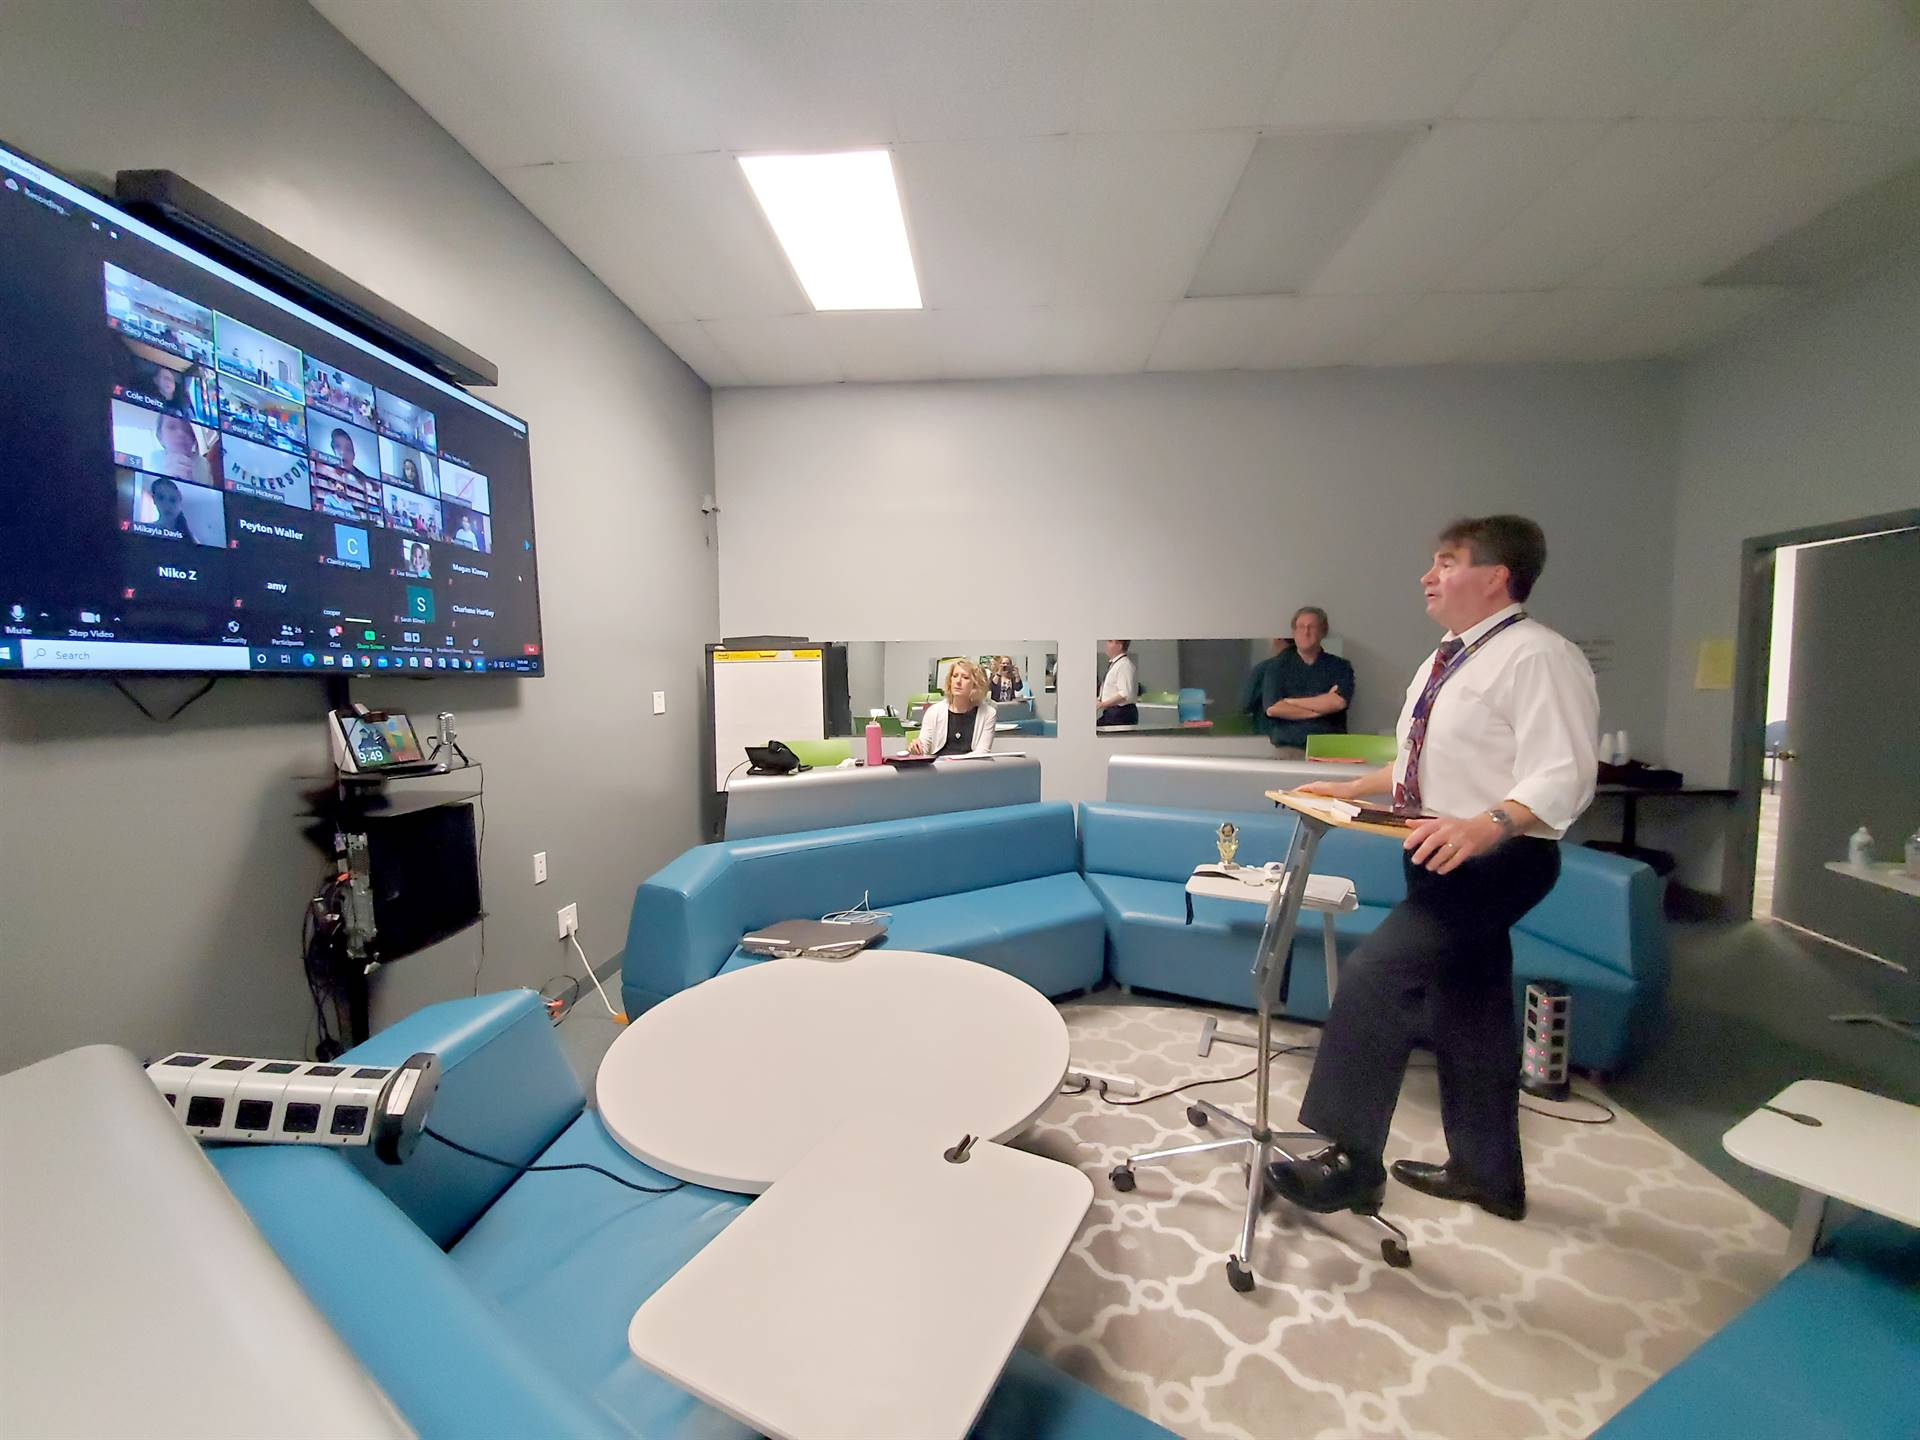 man standing looking at tv screen